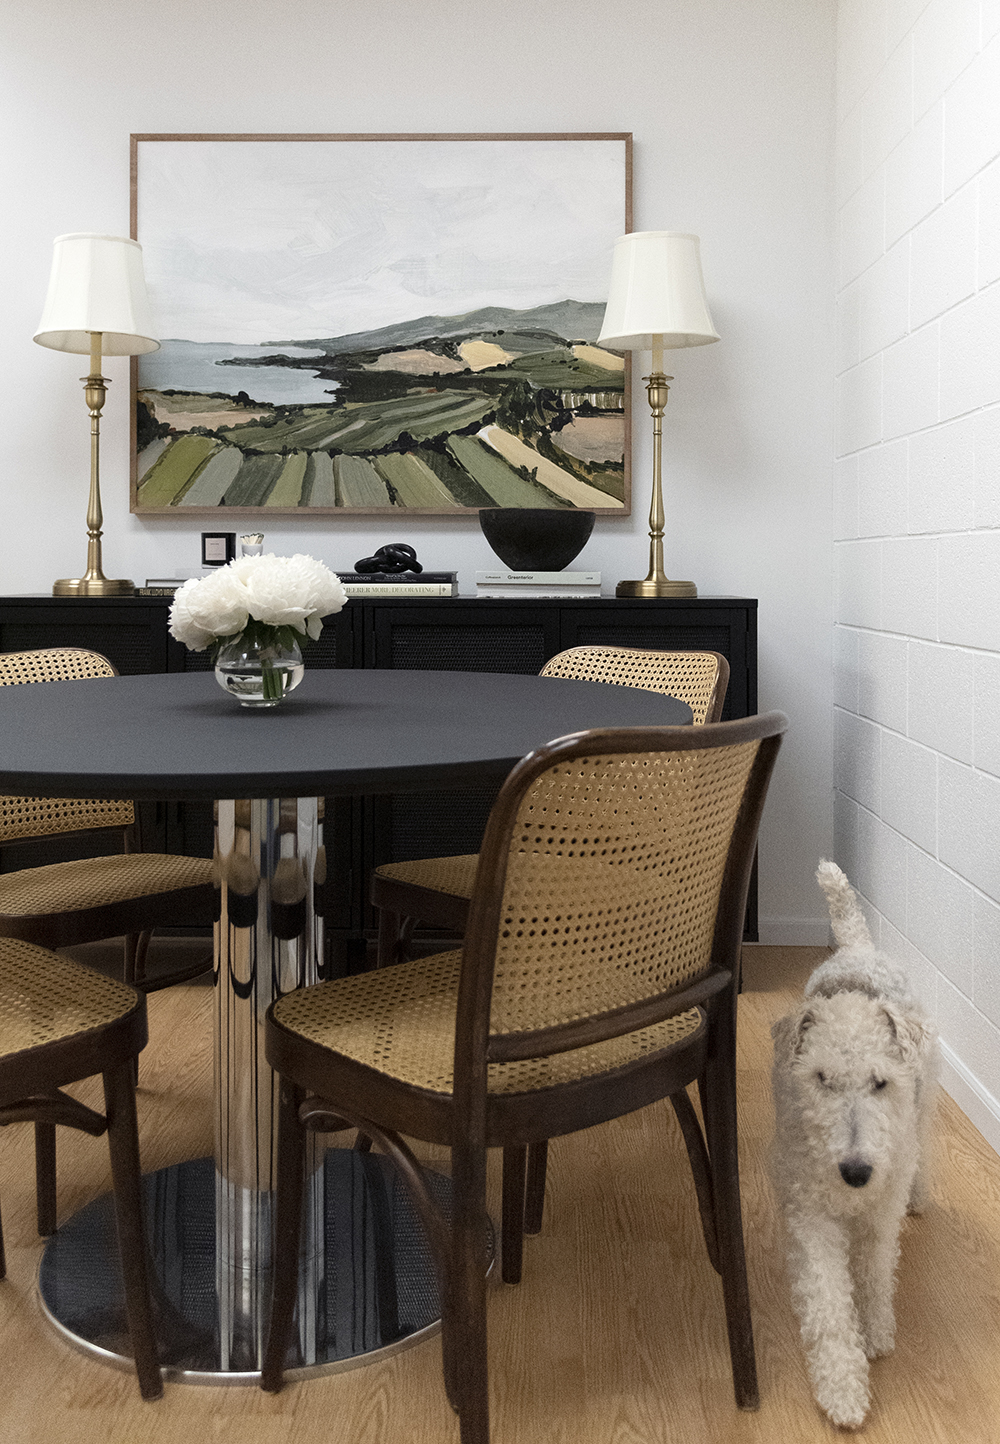 Our Office Dining Area - roomfortuesday.com